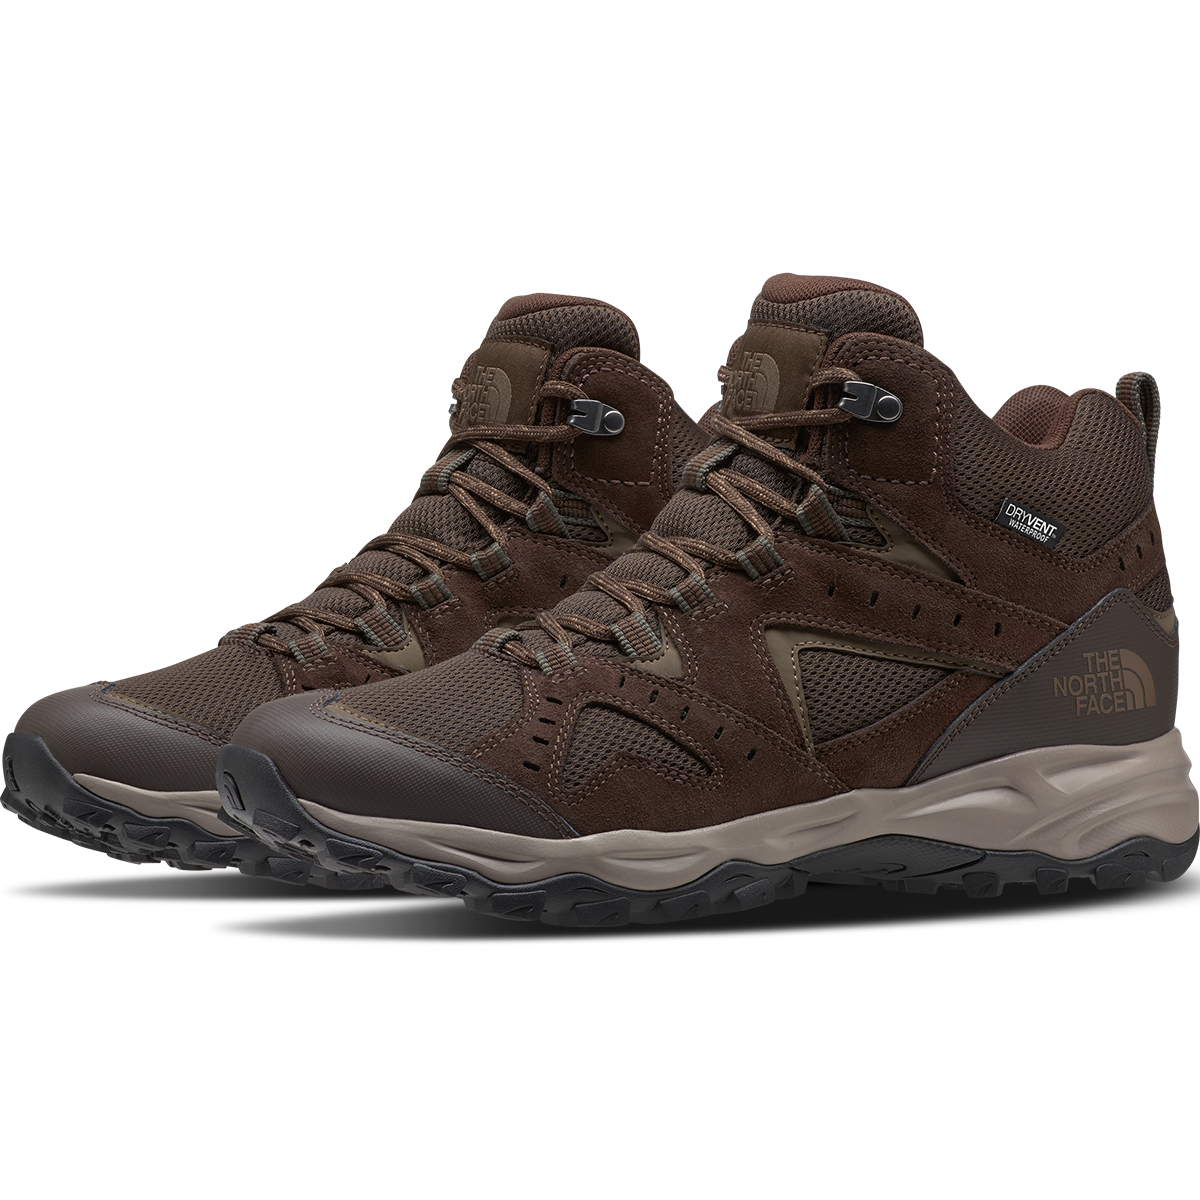 The North Face Men's Trail Edge Waterproof Hiking Shoes - Brown, 10